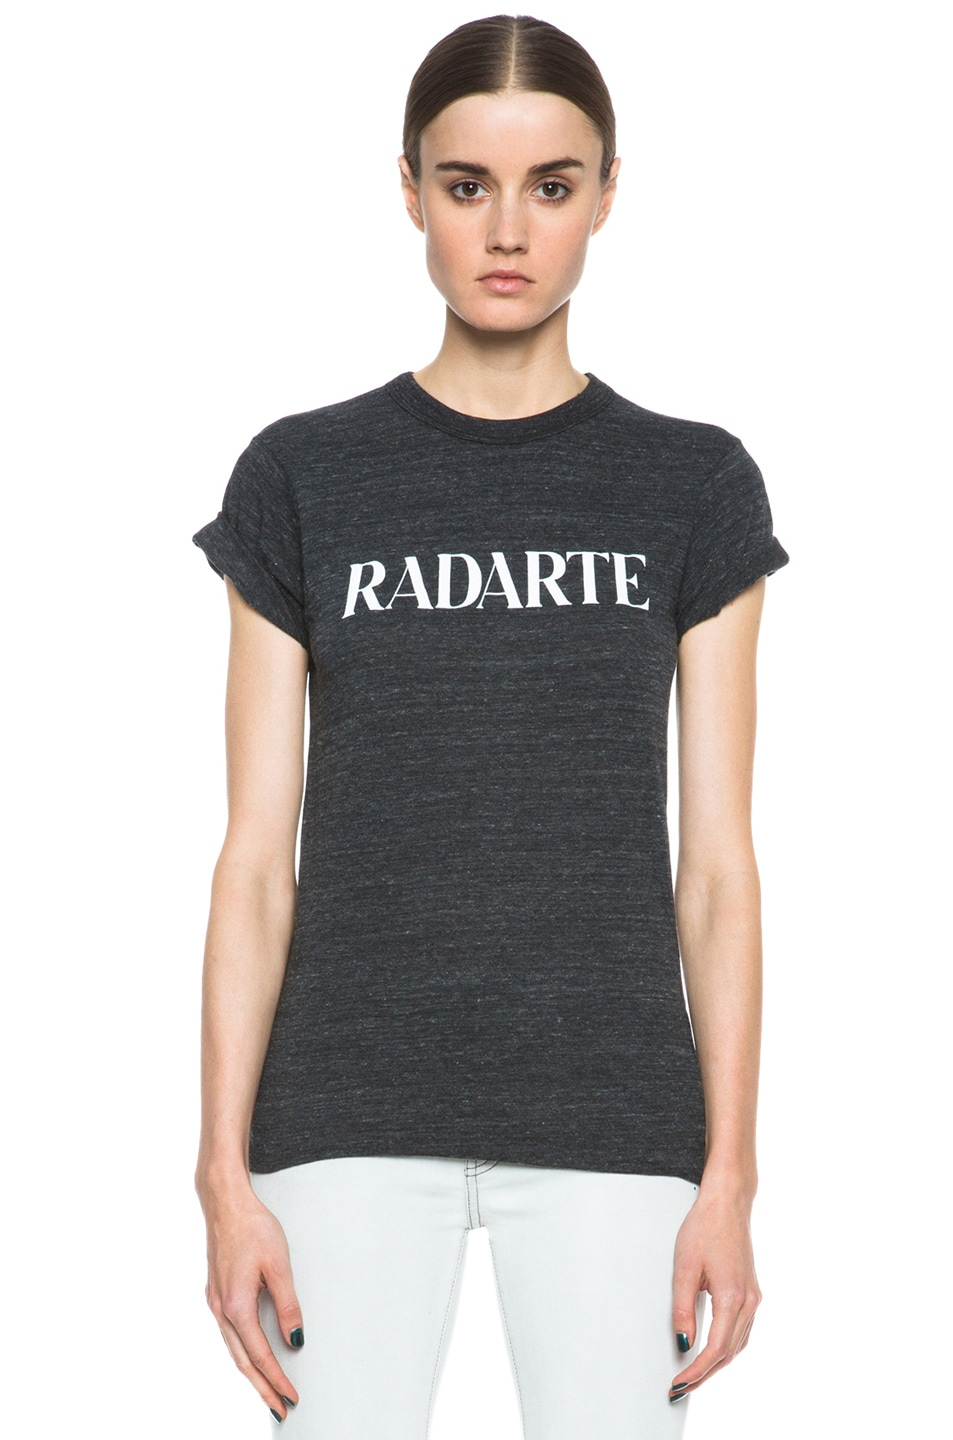 Image 1 of Rodarte Radarte Poly-Blend Shirt in Black Heather